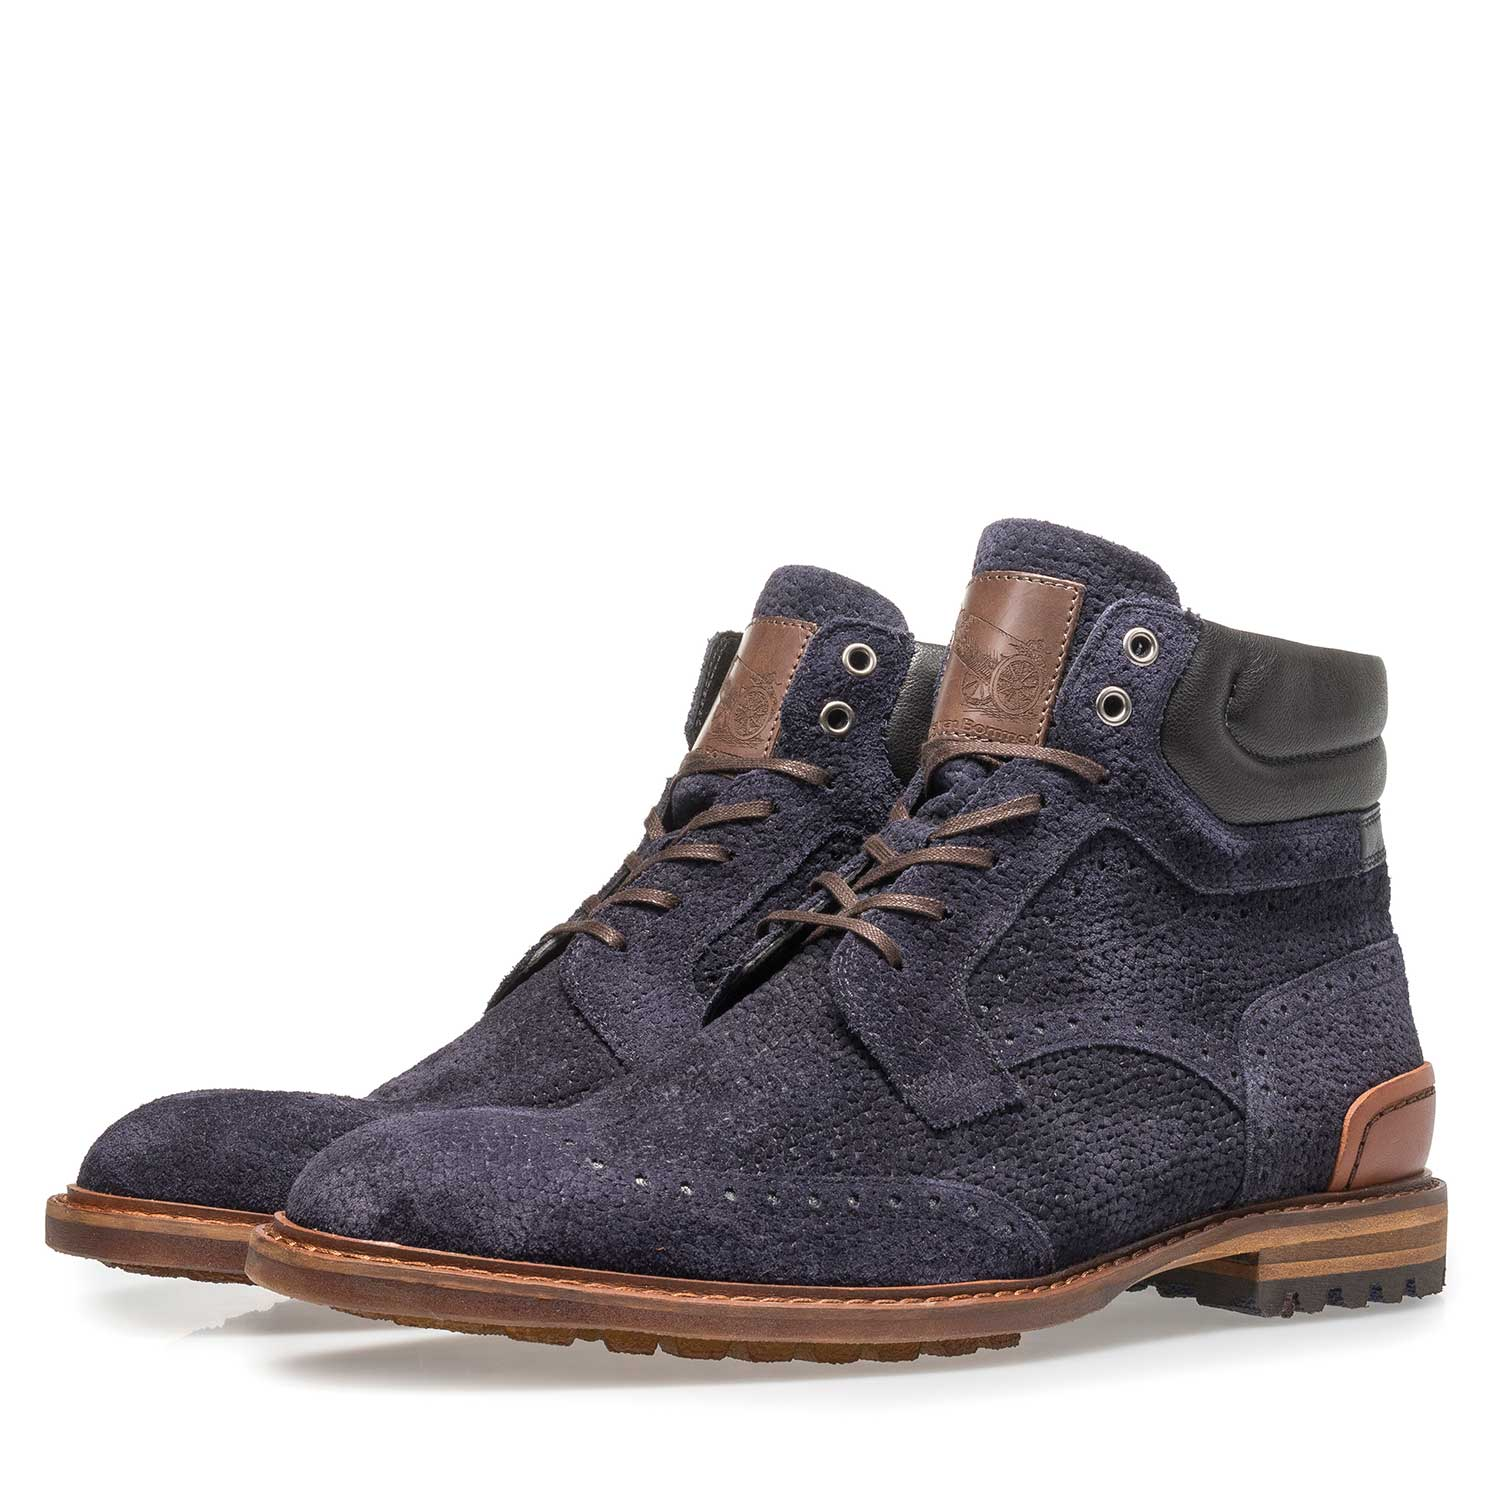 10816/02 - Dark blue suede lace boot with print